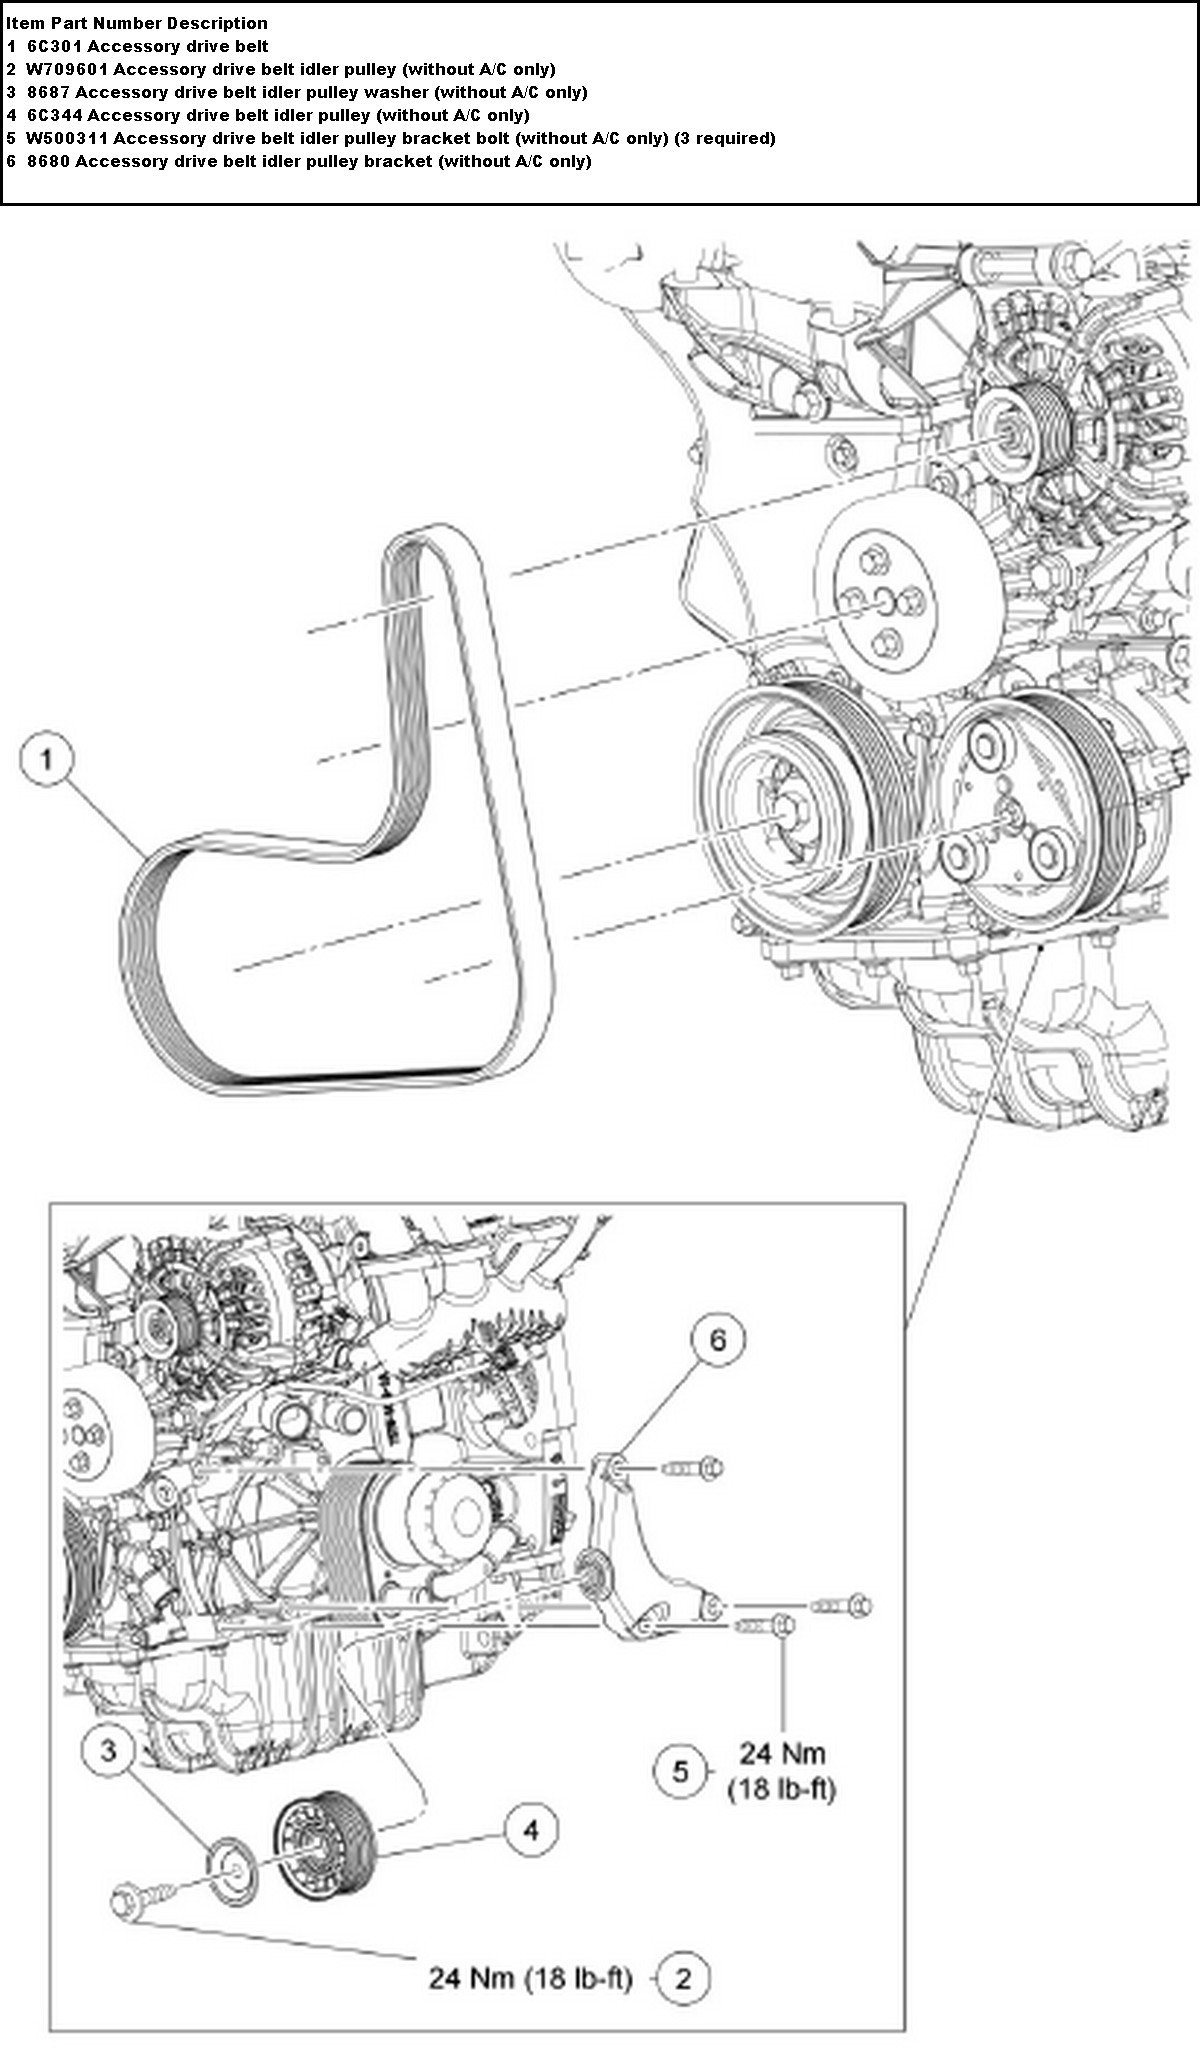 auxiliary auto fuse box with 2011 Ford Fiesta Engine Diagram on 1996 Honda Accord Ignition Wiring Diagram as well 6yta9 Ford F450 Super Duty Pickup Running Park Light Will Not likewise 2011 Ford Fiesta Engine Diagram furthermore 2002 Volvo C70 Seat Wiring Diagram moreover Buick Riviera Ac Wiring Diagram.